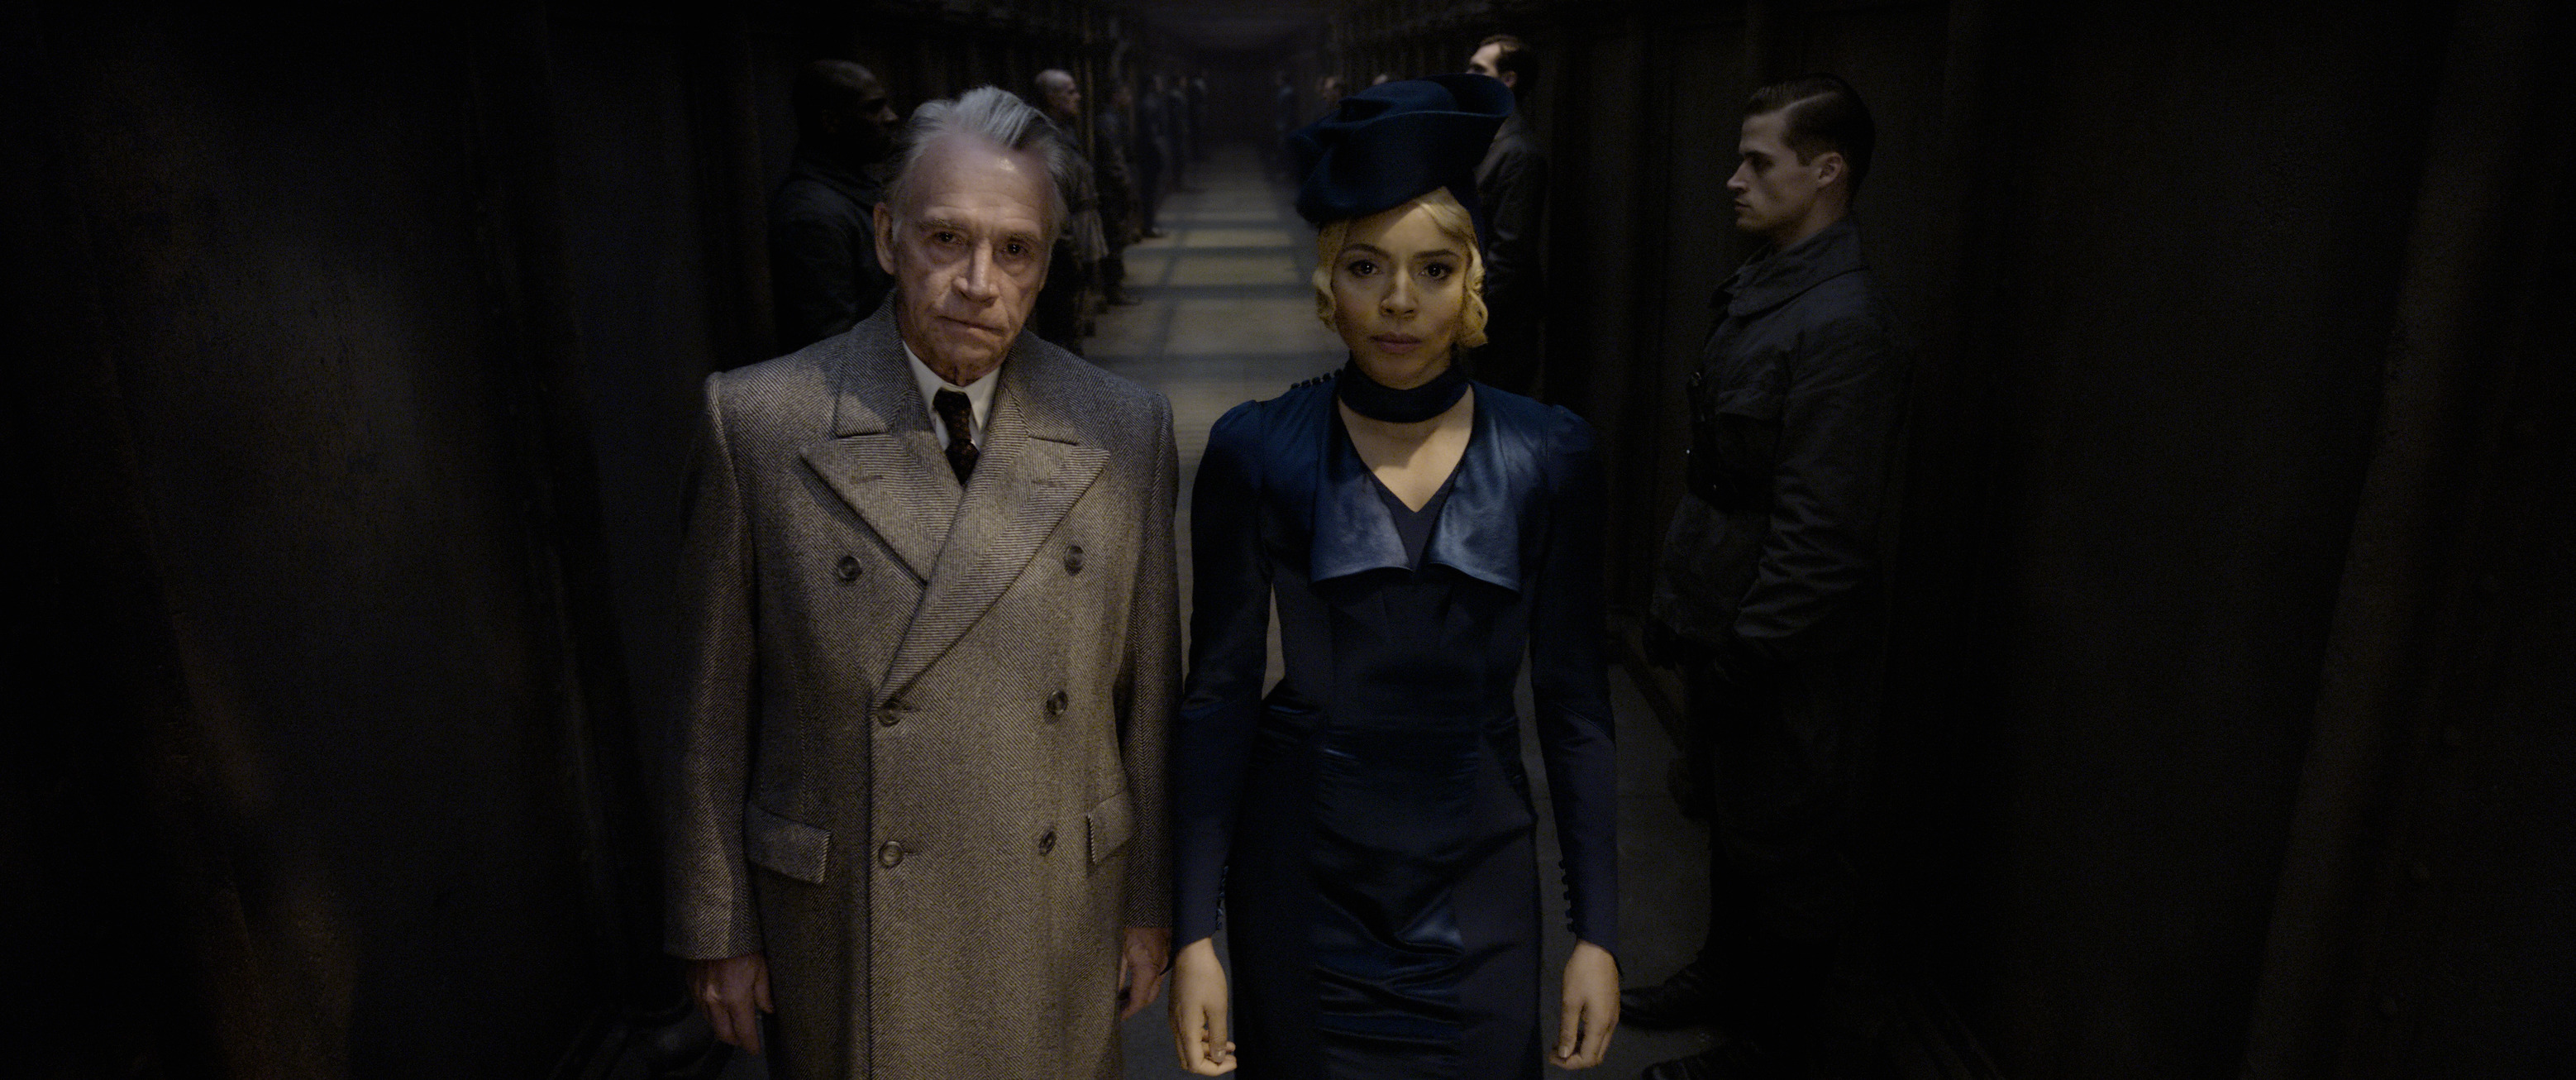 """Fantastic Beasts: The Crimes of Grindelwald"": Spielman (Wolf Roth) and Seraphina Picquery (Carmen Ejogo)"